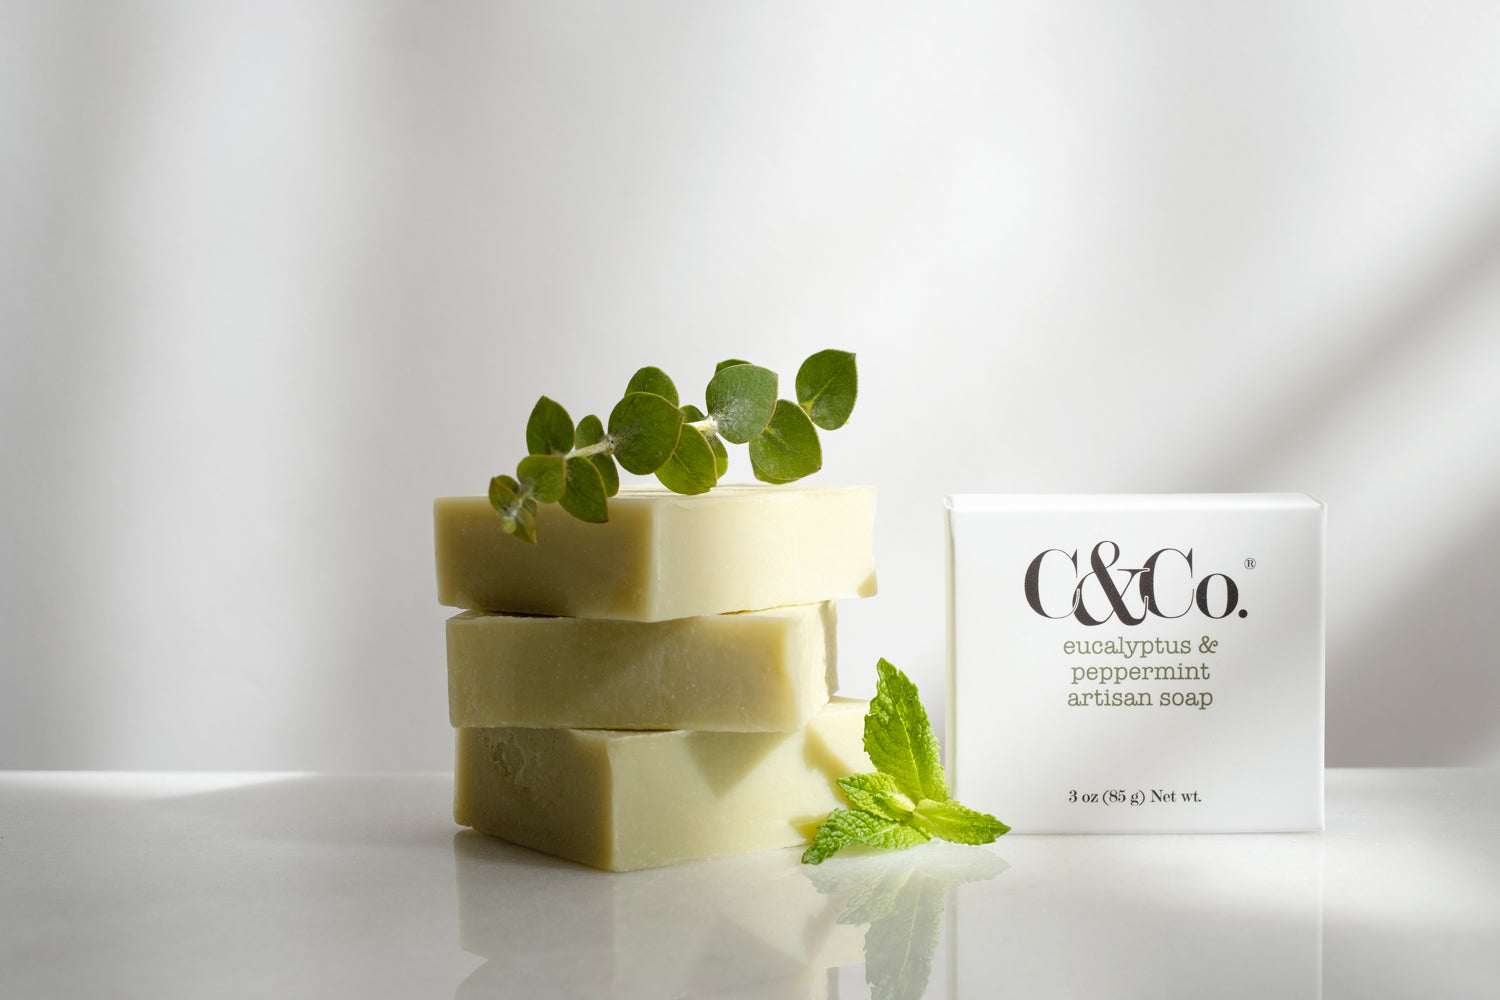 Eucalyptus & Peppermint Artisan Soap - C & Co.®